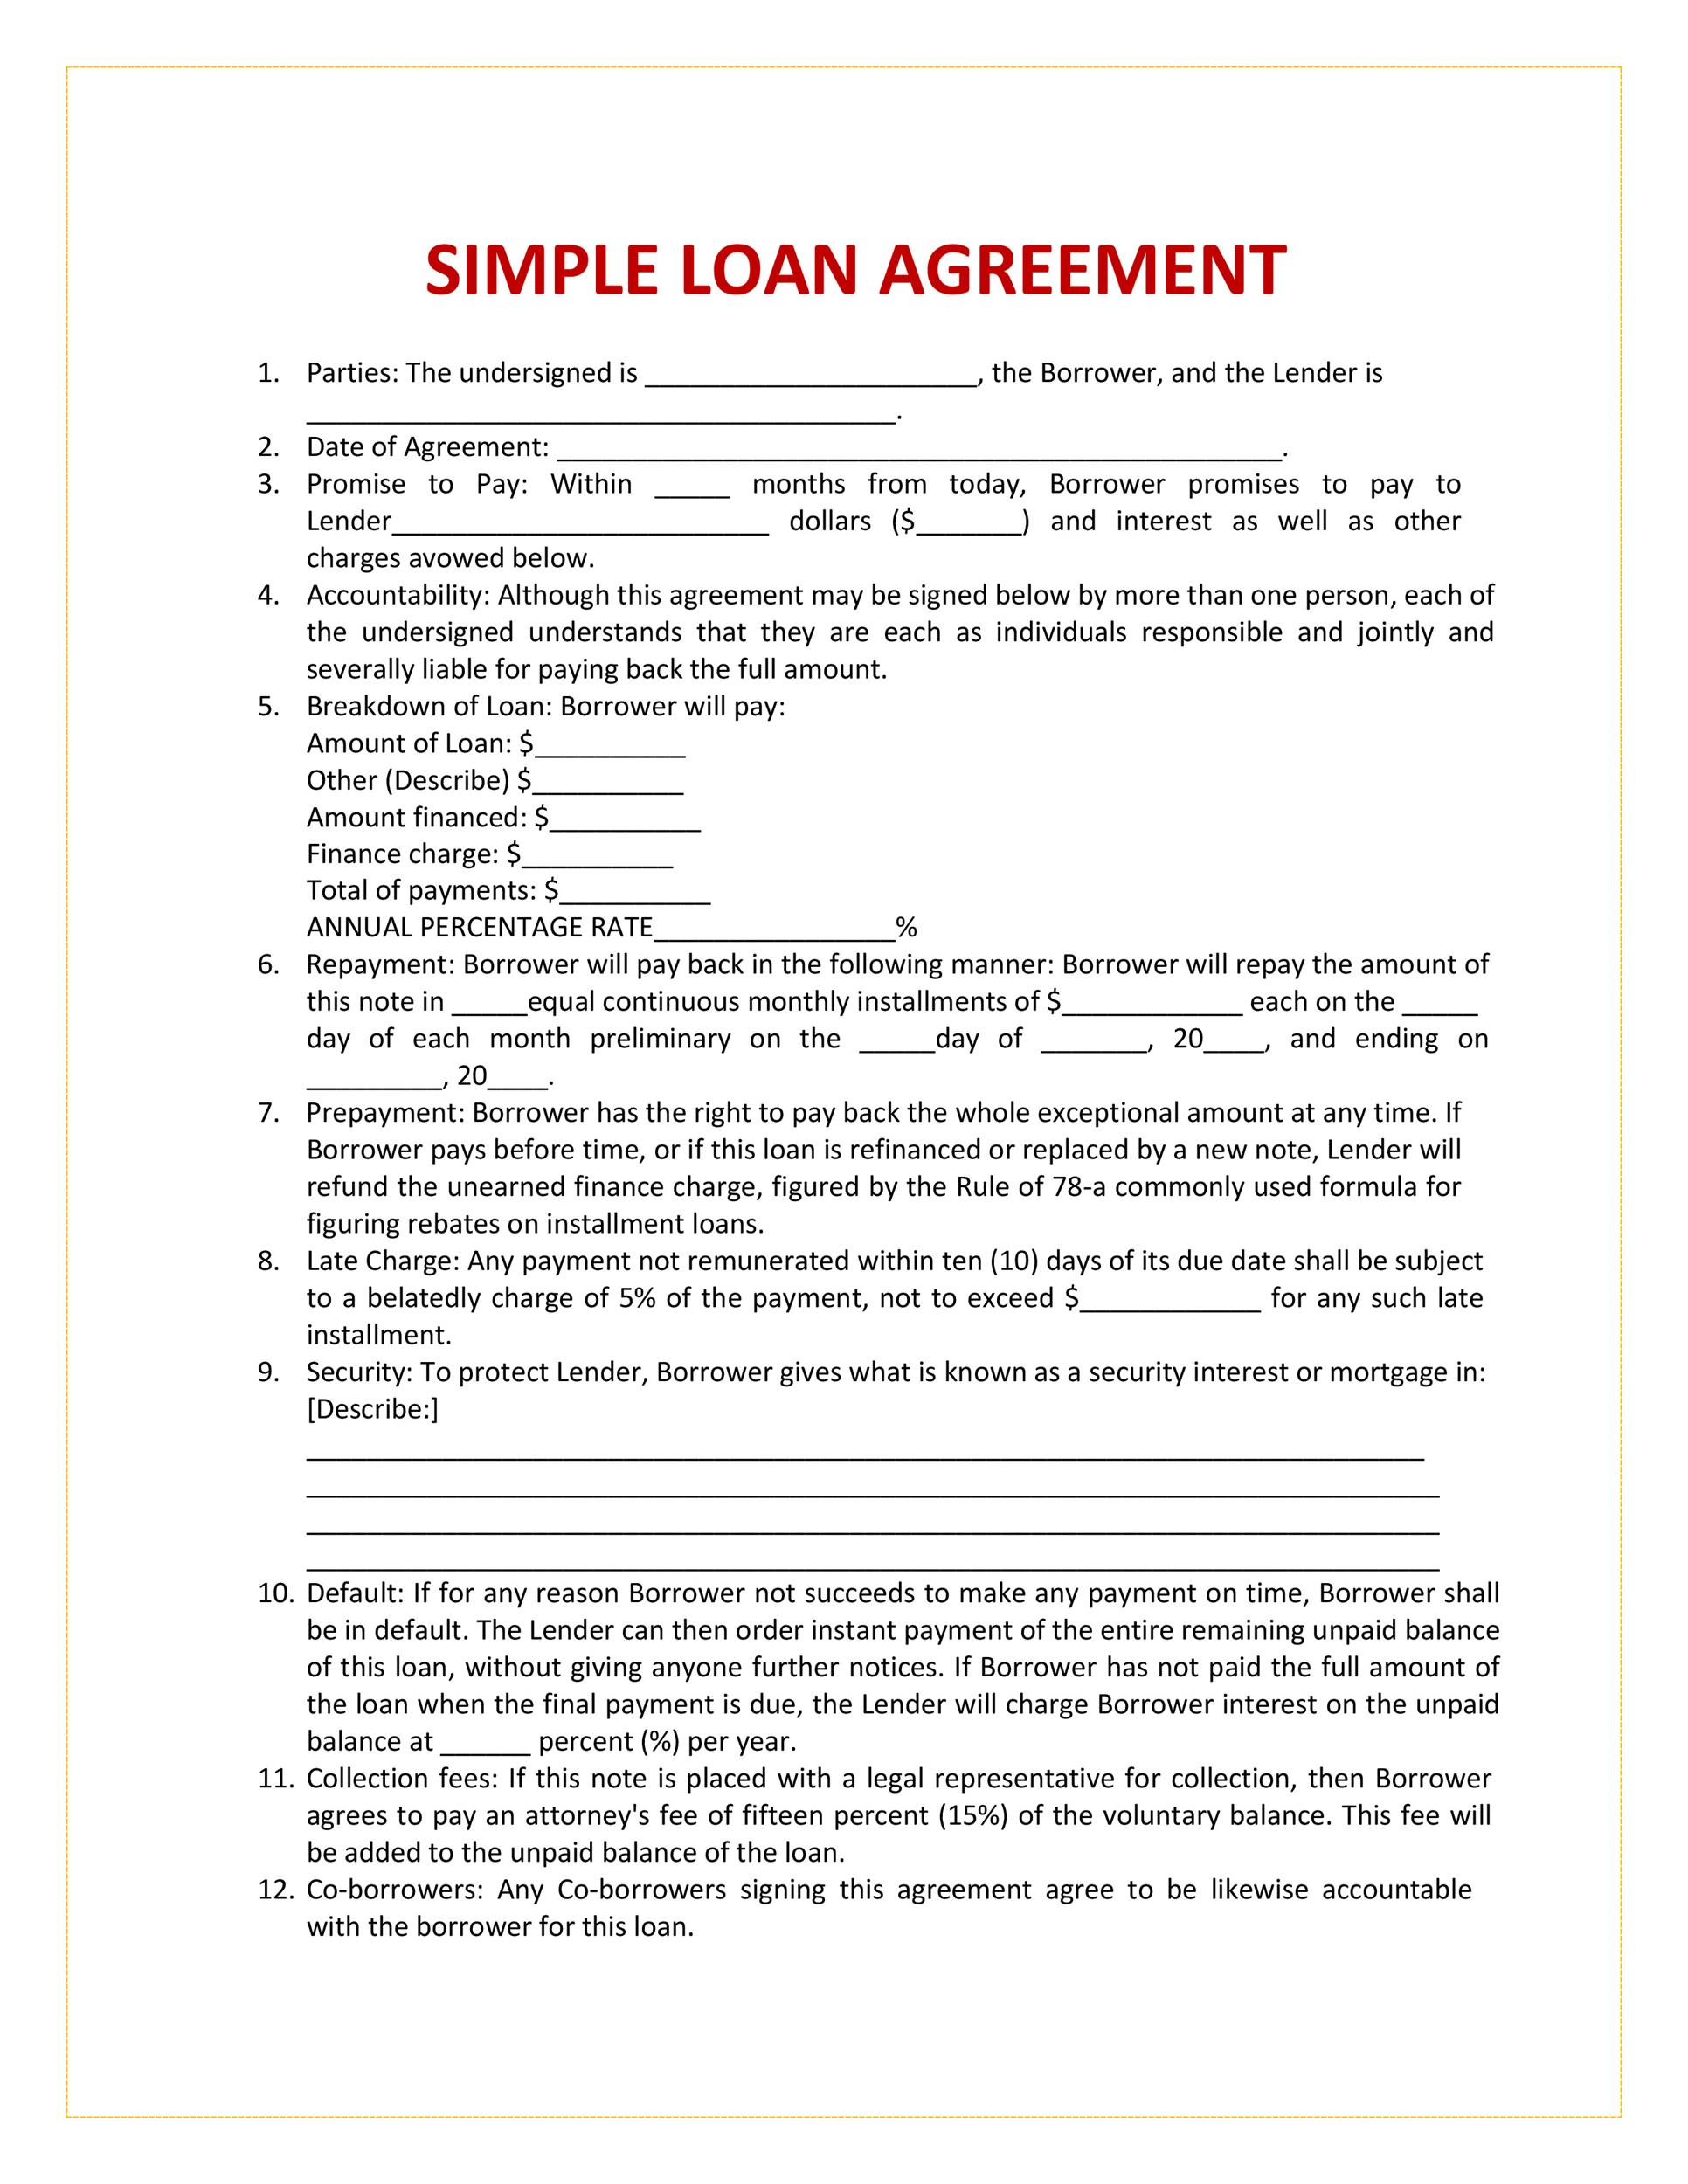 40+ Free Loan Agreement Templates [Word & PDF] ᐅ Template Lab